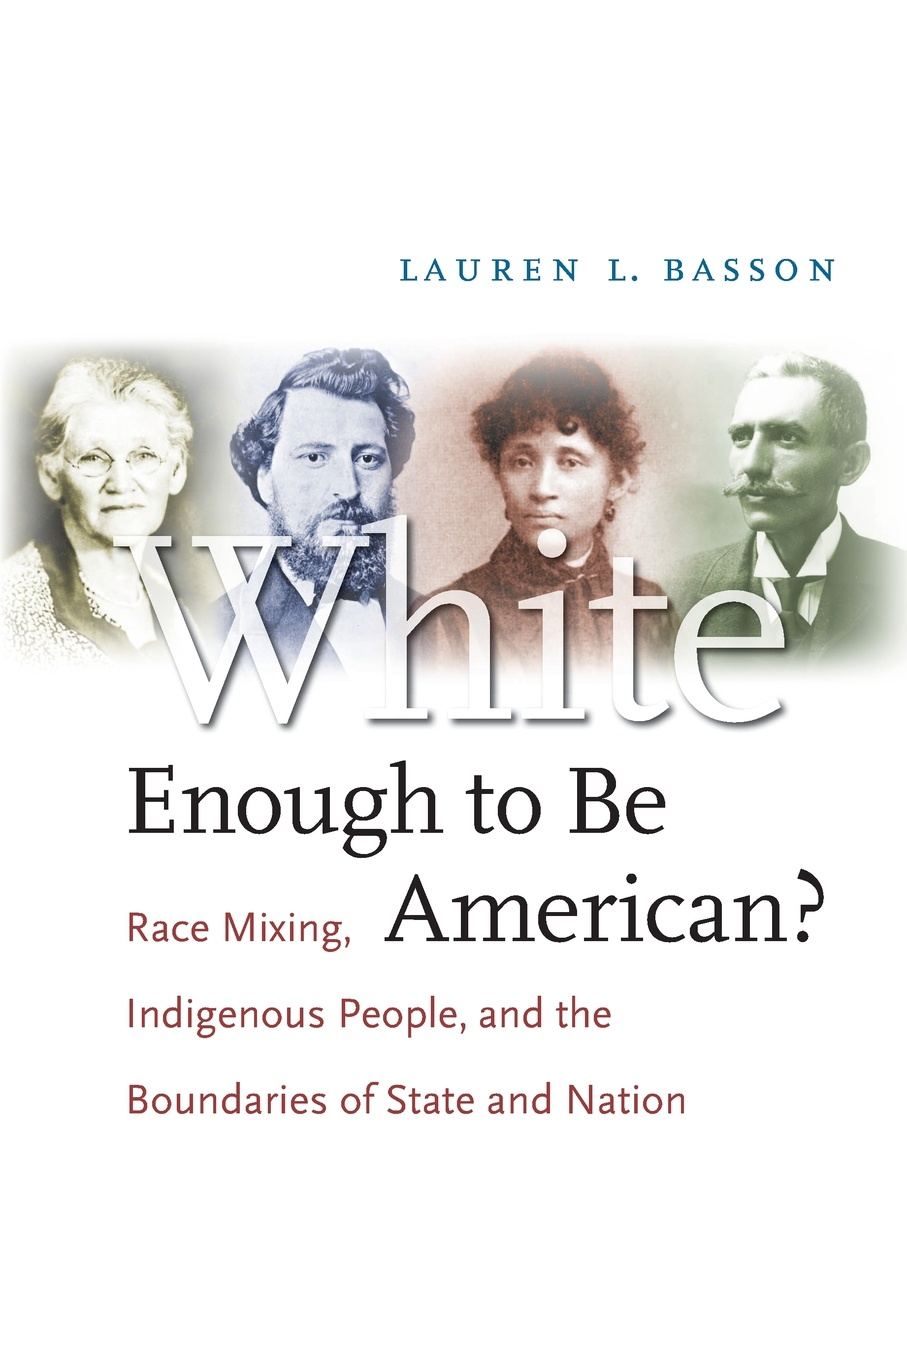 Lauren L. Basson White Enough to Be American?. Race Mixing, Indigenous People, and the Boundaries of State and Nation alexey szydlowski ferguson model of the racial political conflict constitutional and legal aspects